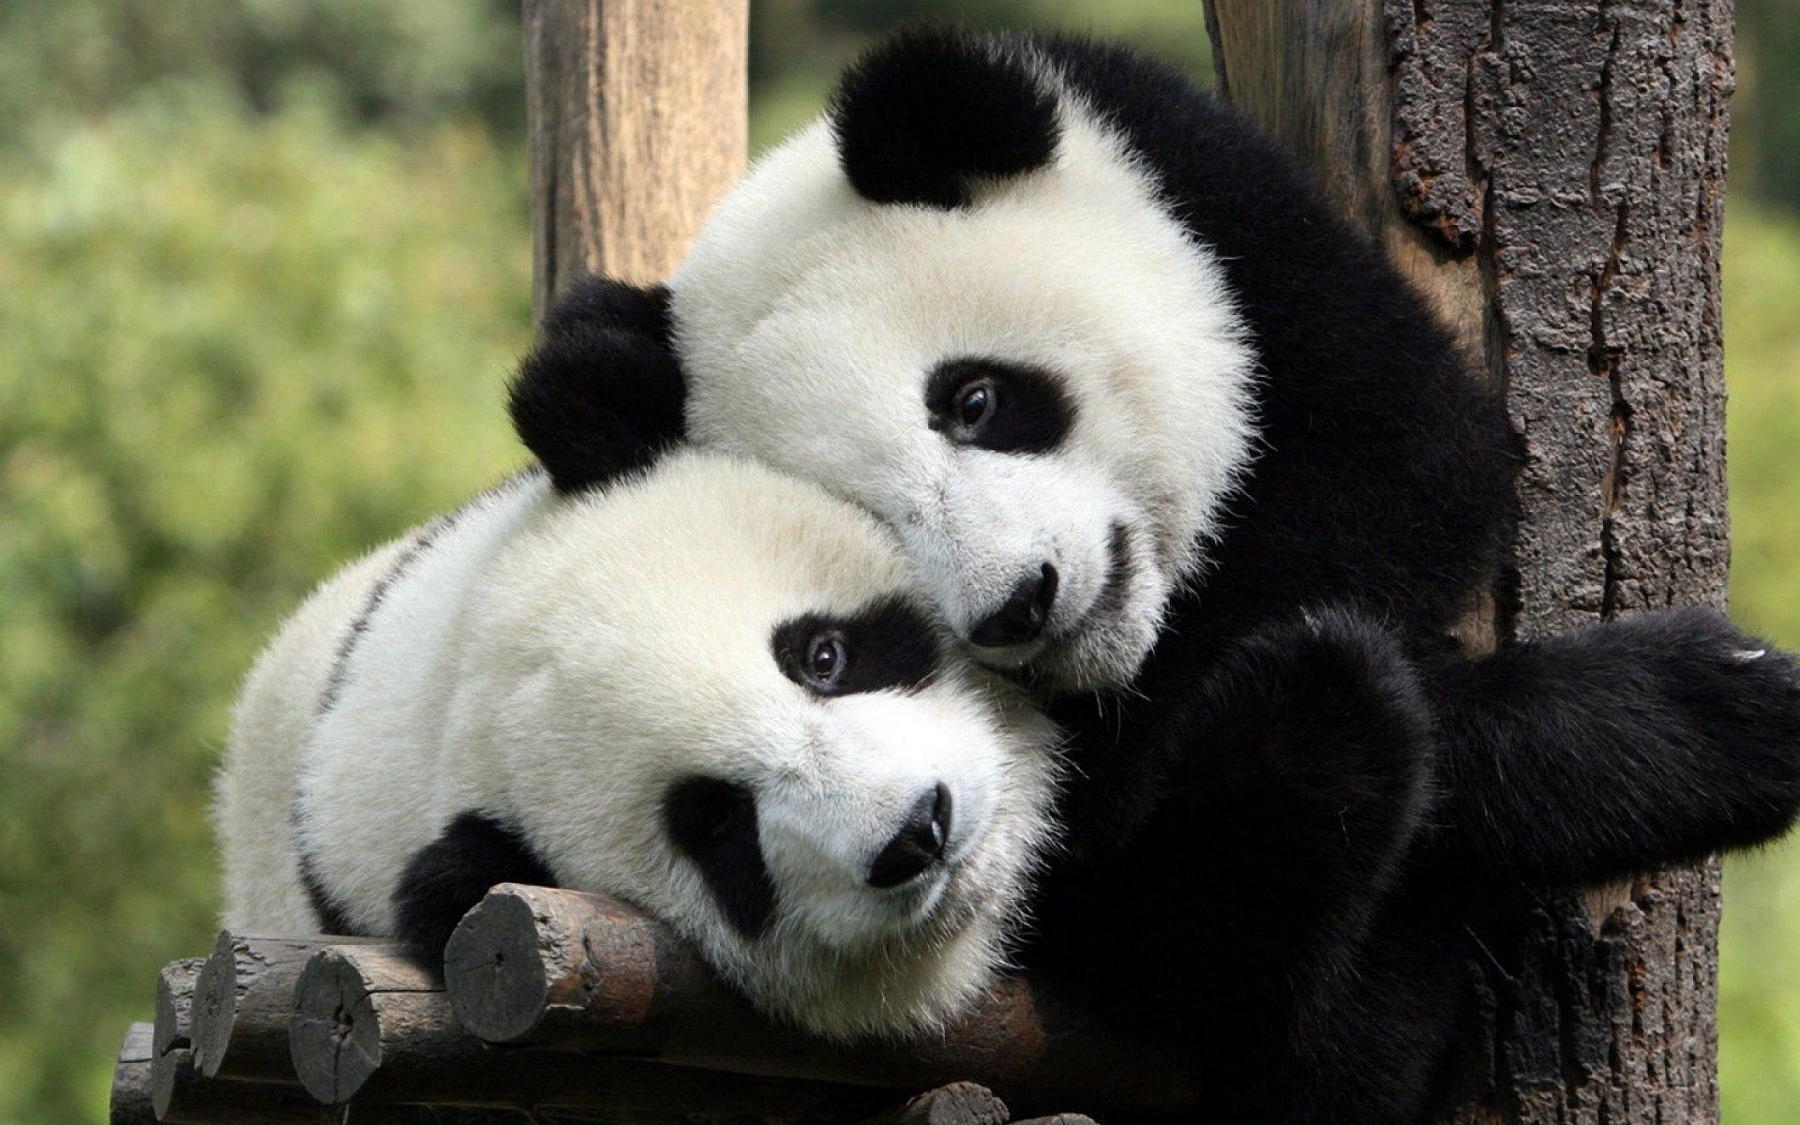 Let's get up close with pandas in Sichuan starting at Sichuan, China